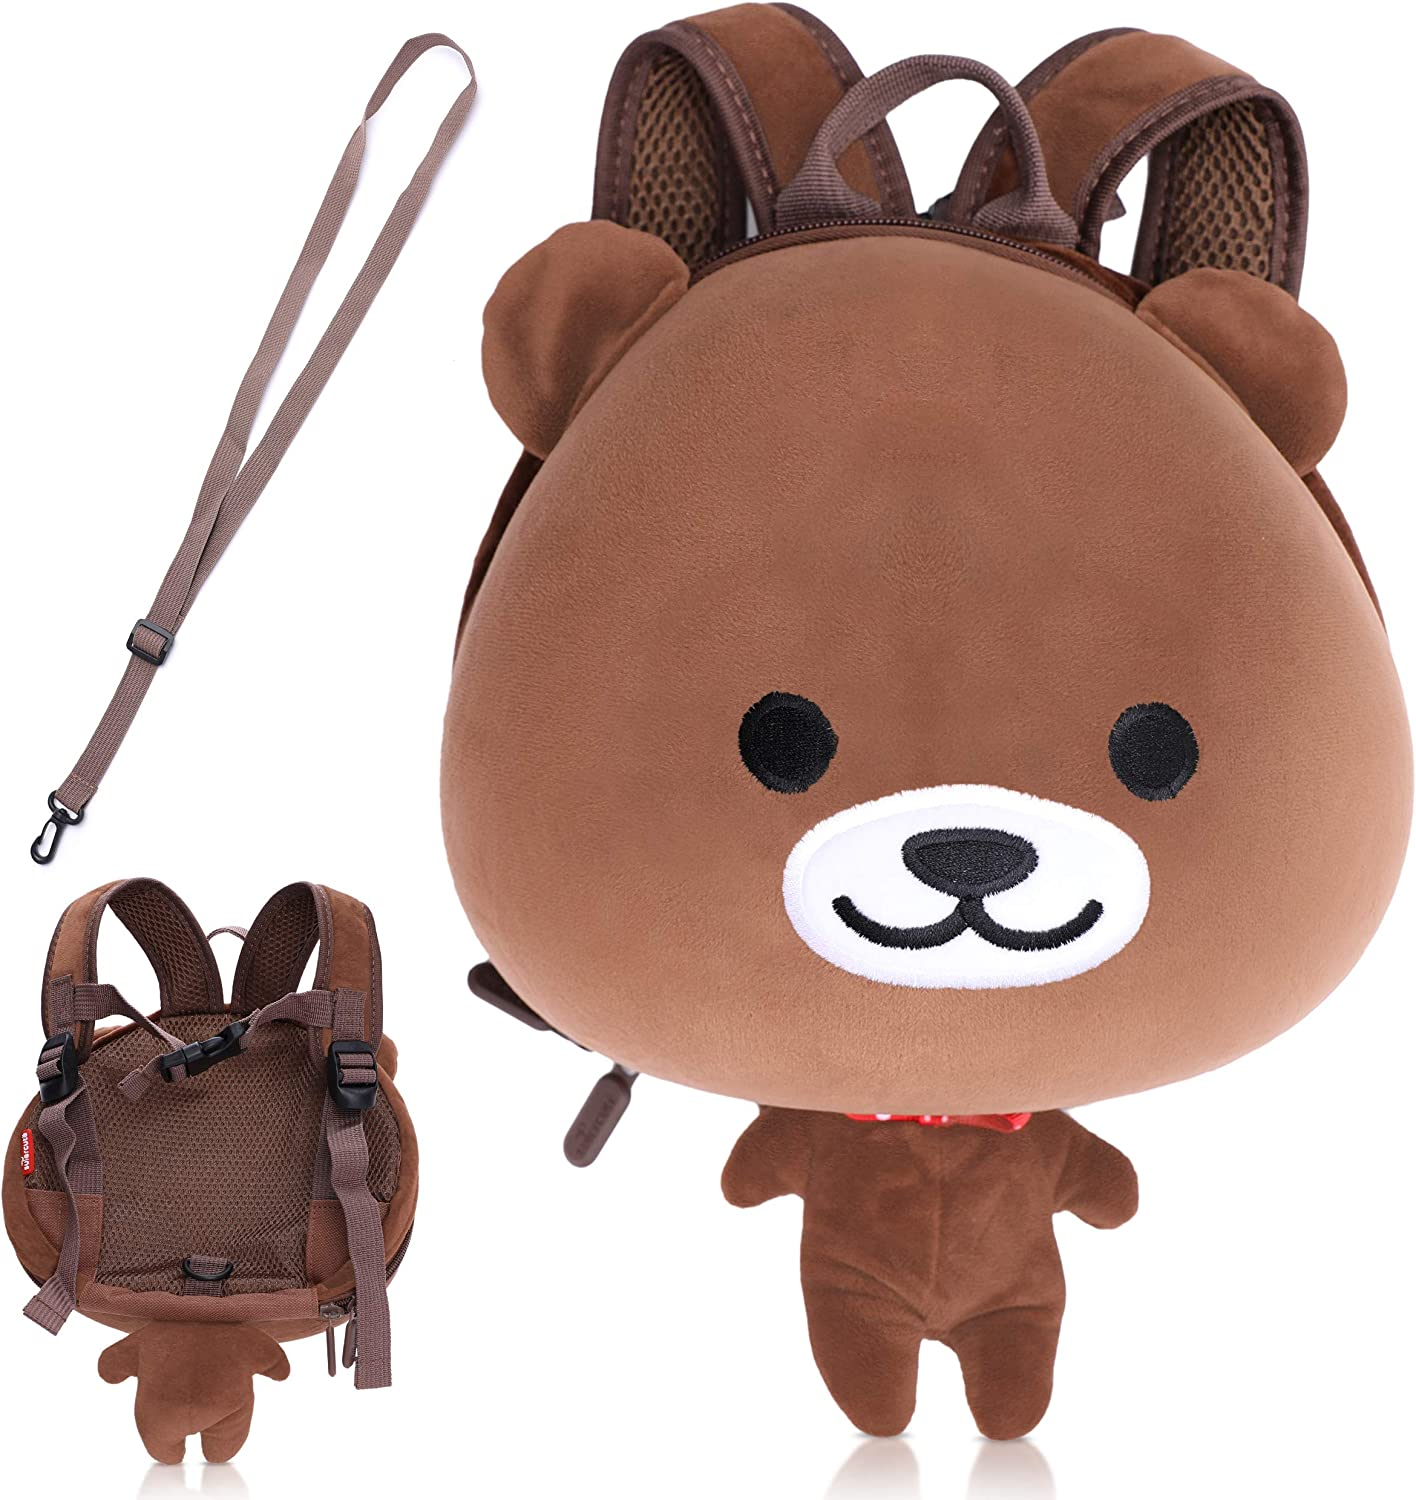 Supercute Bear Backpack with Harness and Teather - Brown